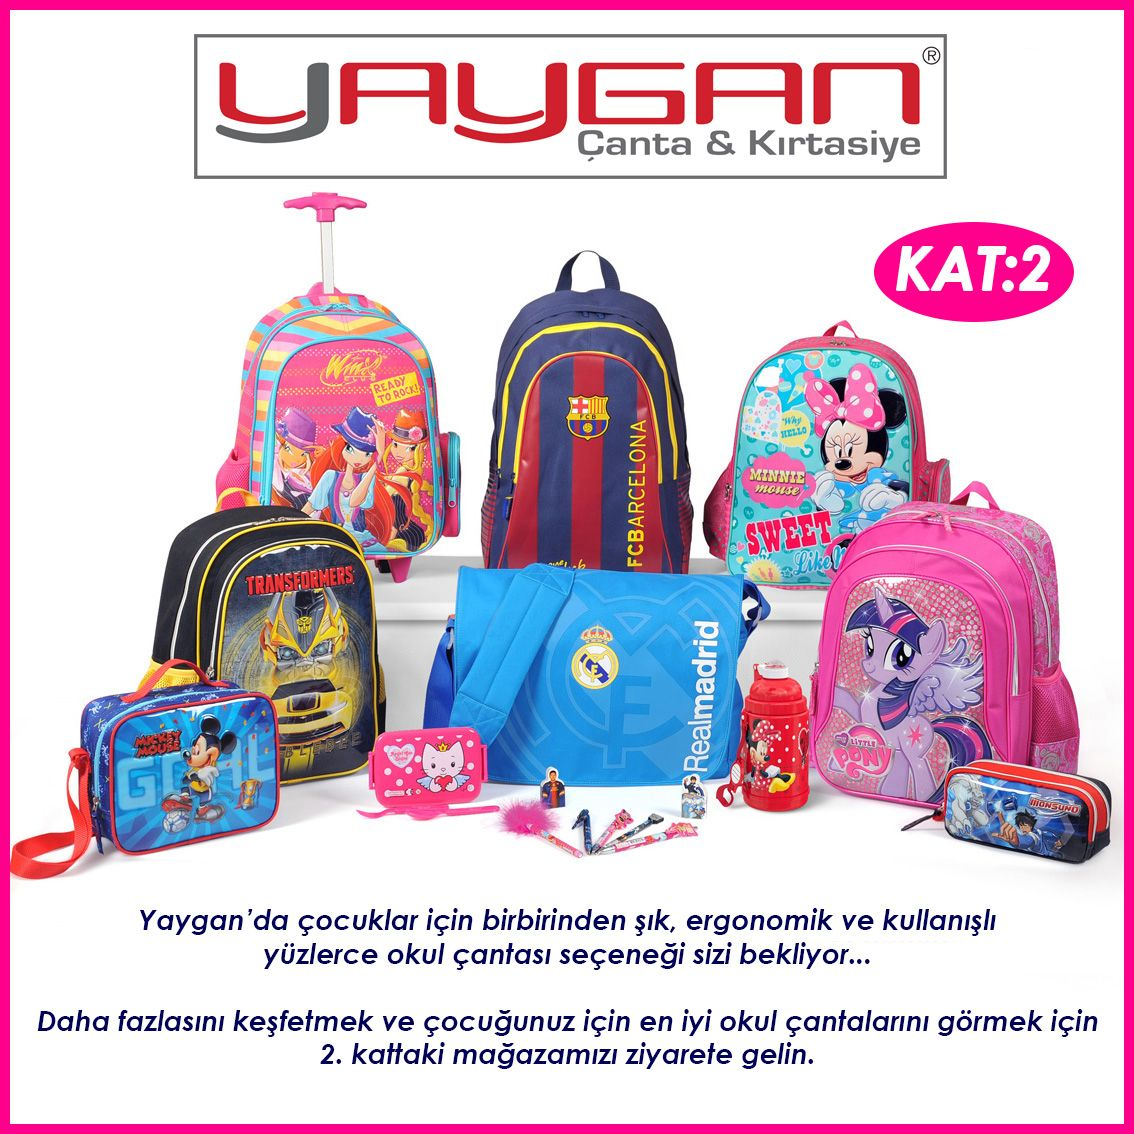 Photo of Yaygan offers stylish, ergonomic and convenient faces for children.